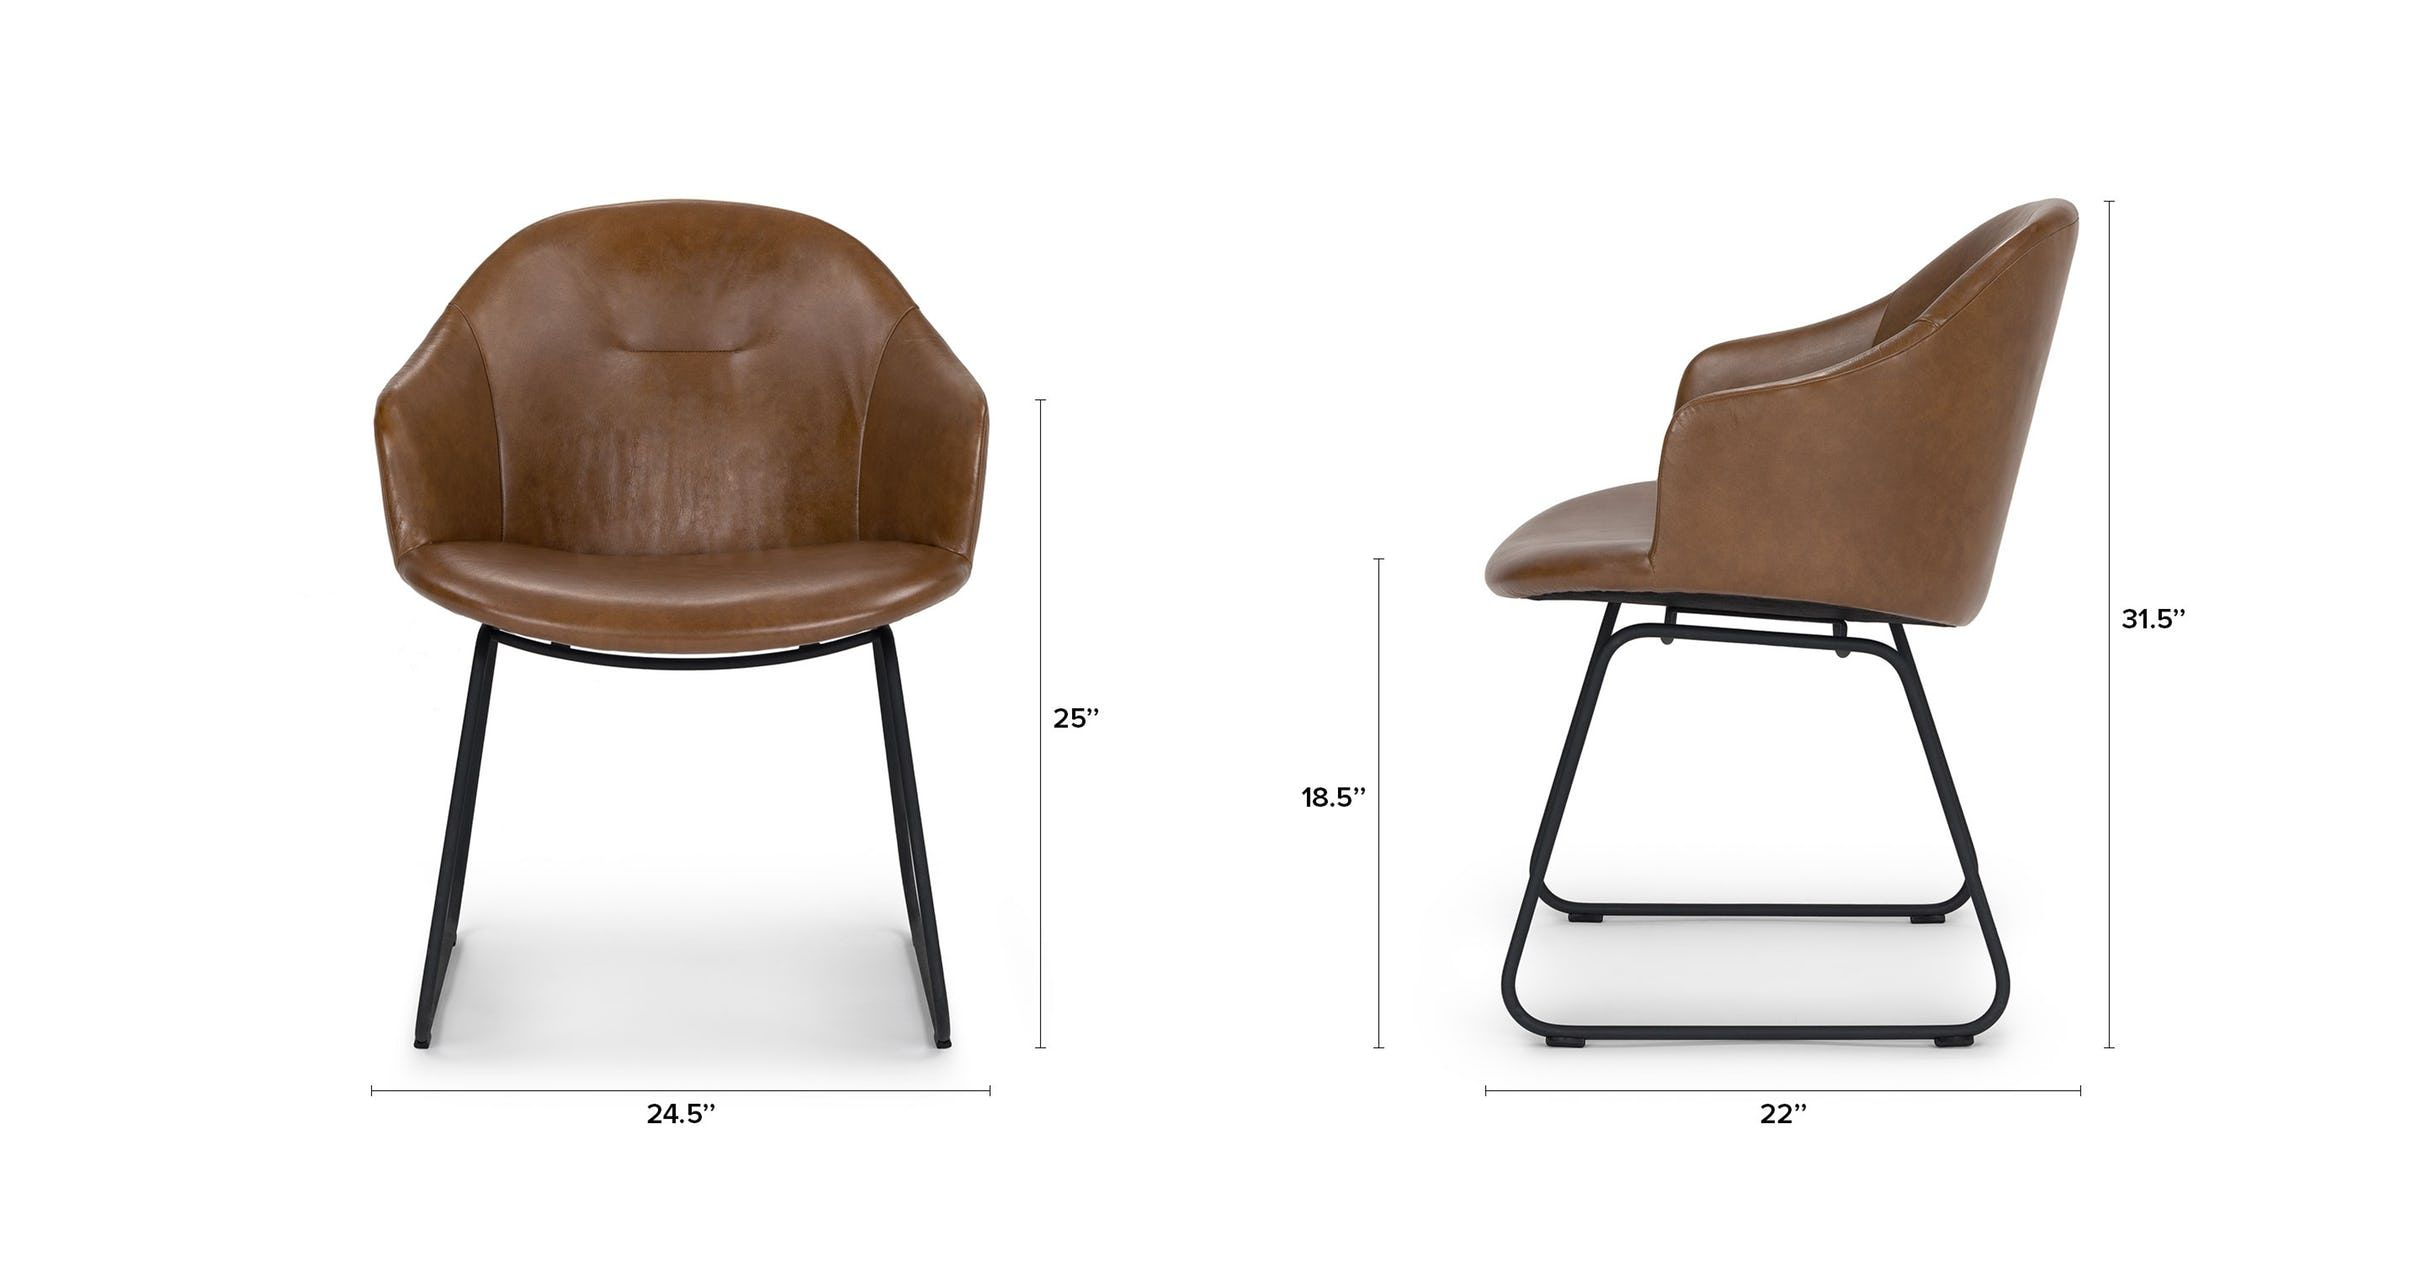 Glove Bella Tan Dining Chair Chairs Article Modern Mid Century And Scandinavian Furniture Tan Dining Chair Midcentury Modern Dining Chairs Dining Chairs